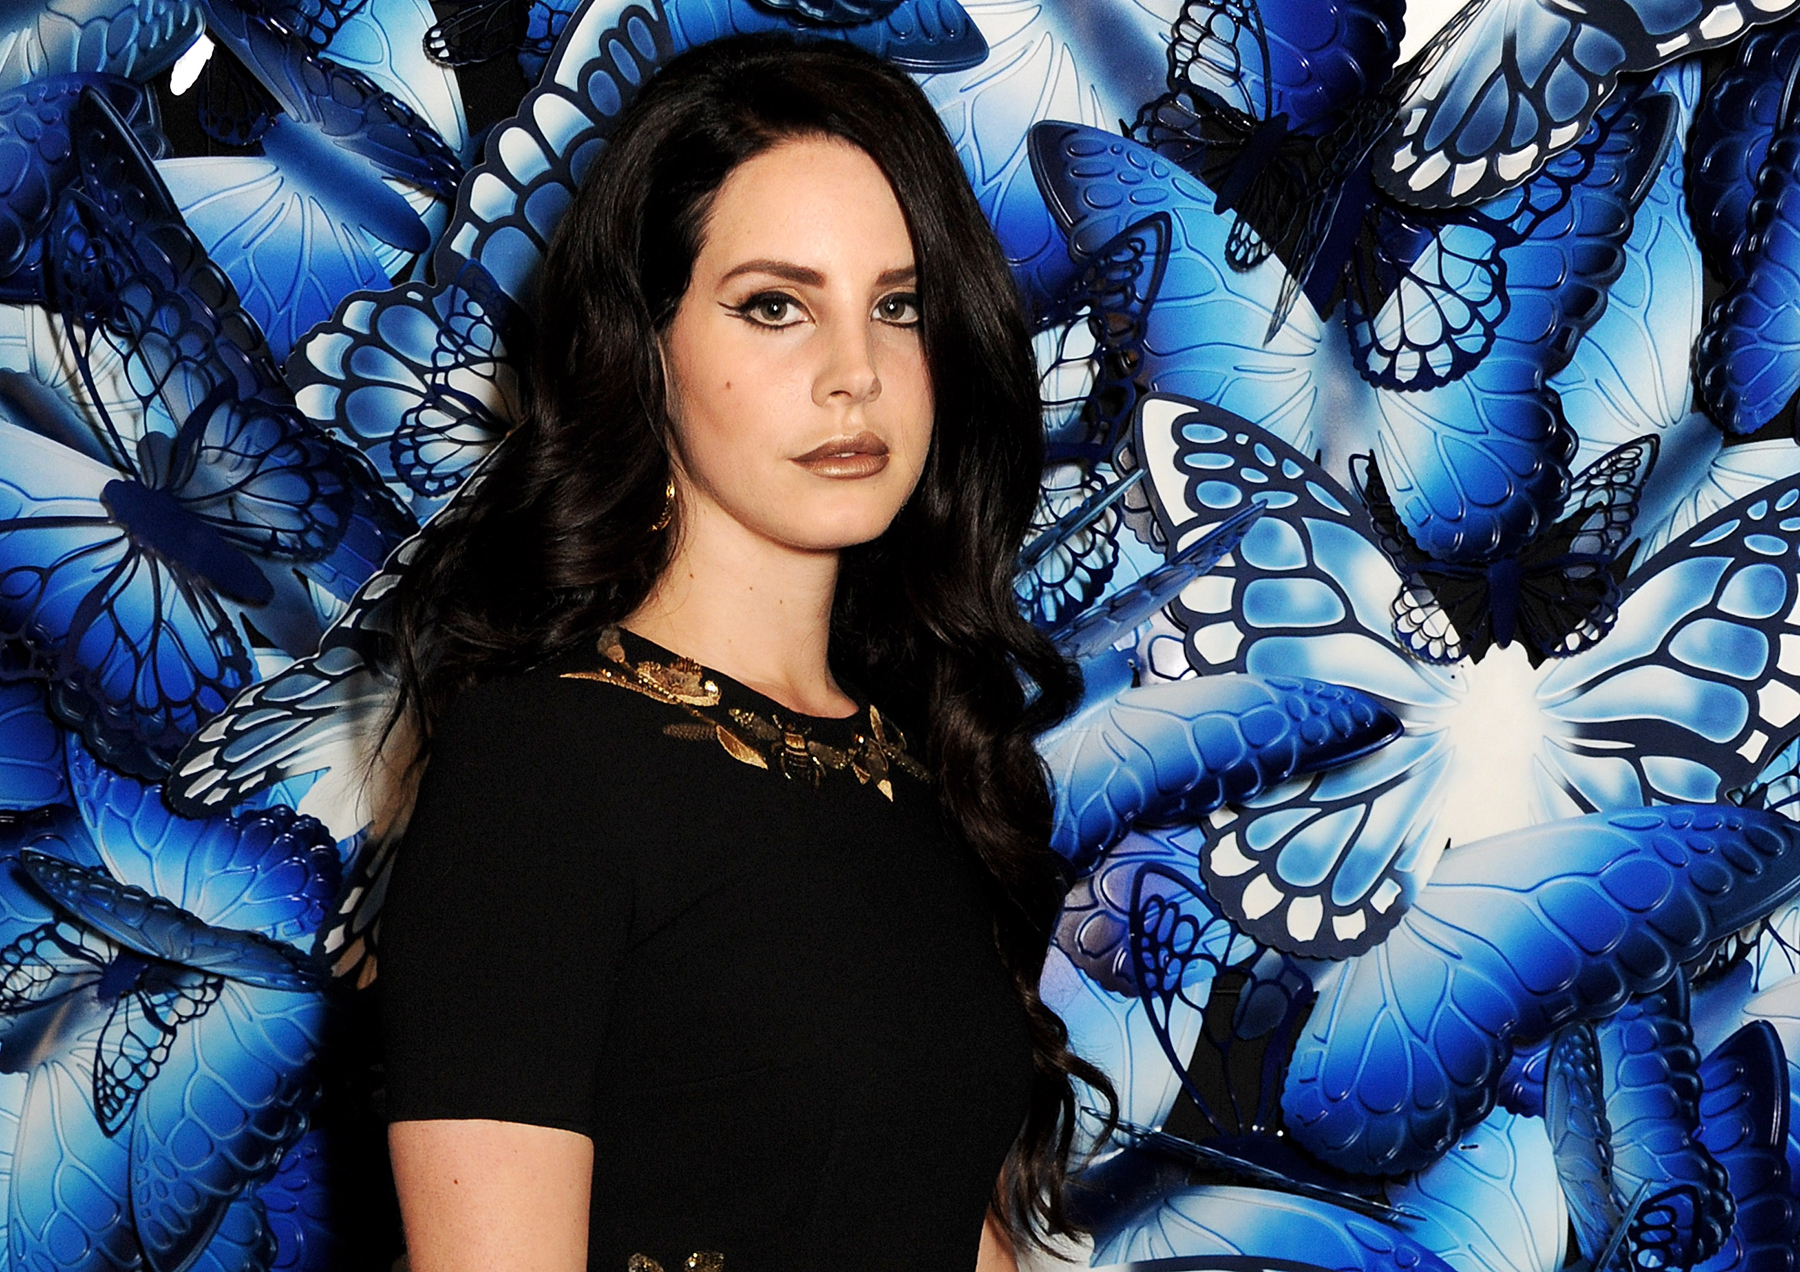 Shades of Cool: 12 of Lana Del Rey's Biggest Influences